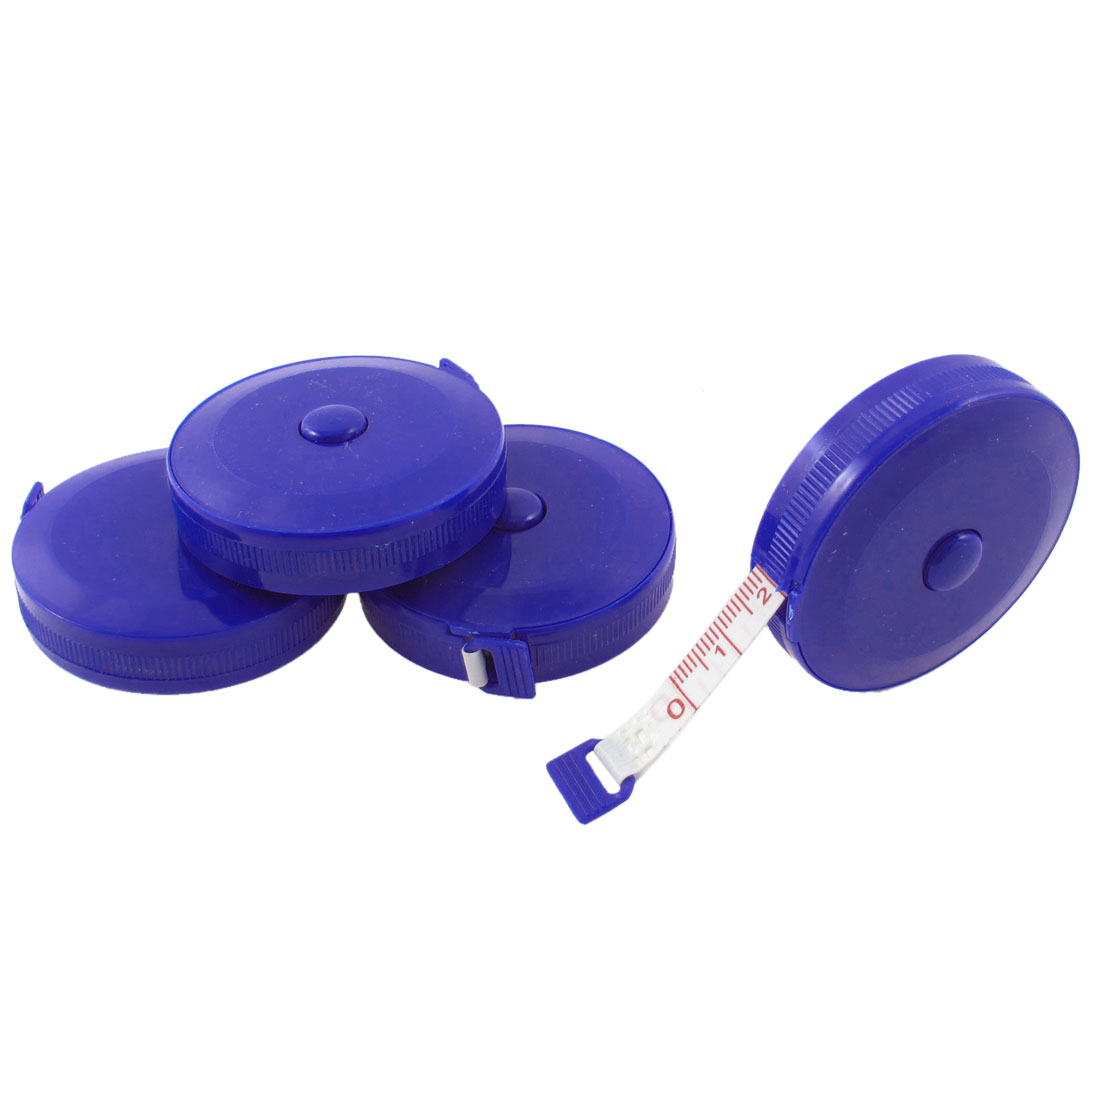 4 Pcs Blue Round Retractable Tailors Sewing Measure Tape Ruler Metric 150cm 45cun